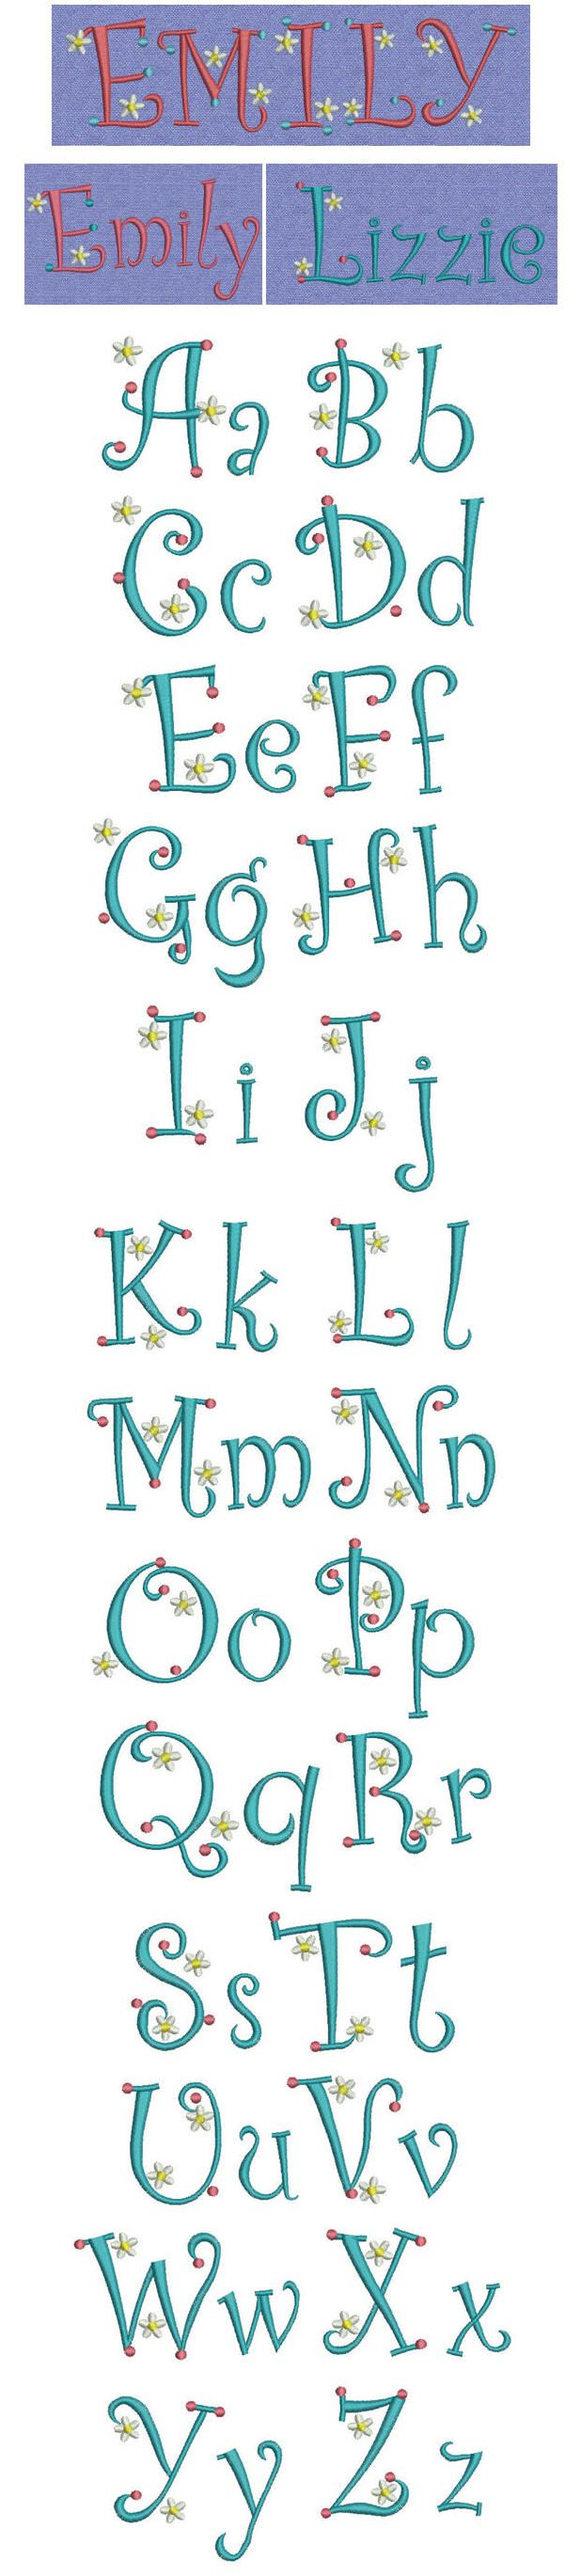 I love these!!!! Embroidery | Free Machine Embroidery designs | Dots Daisies alphabet